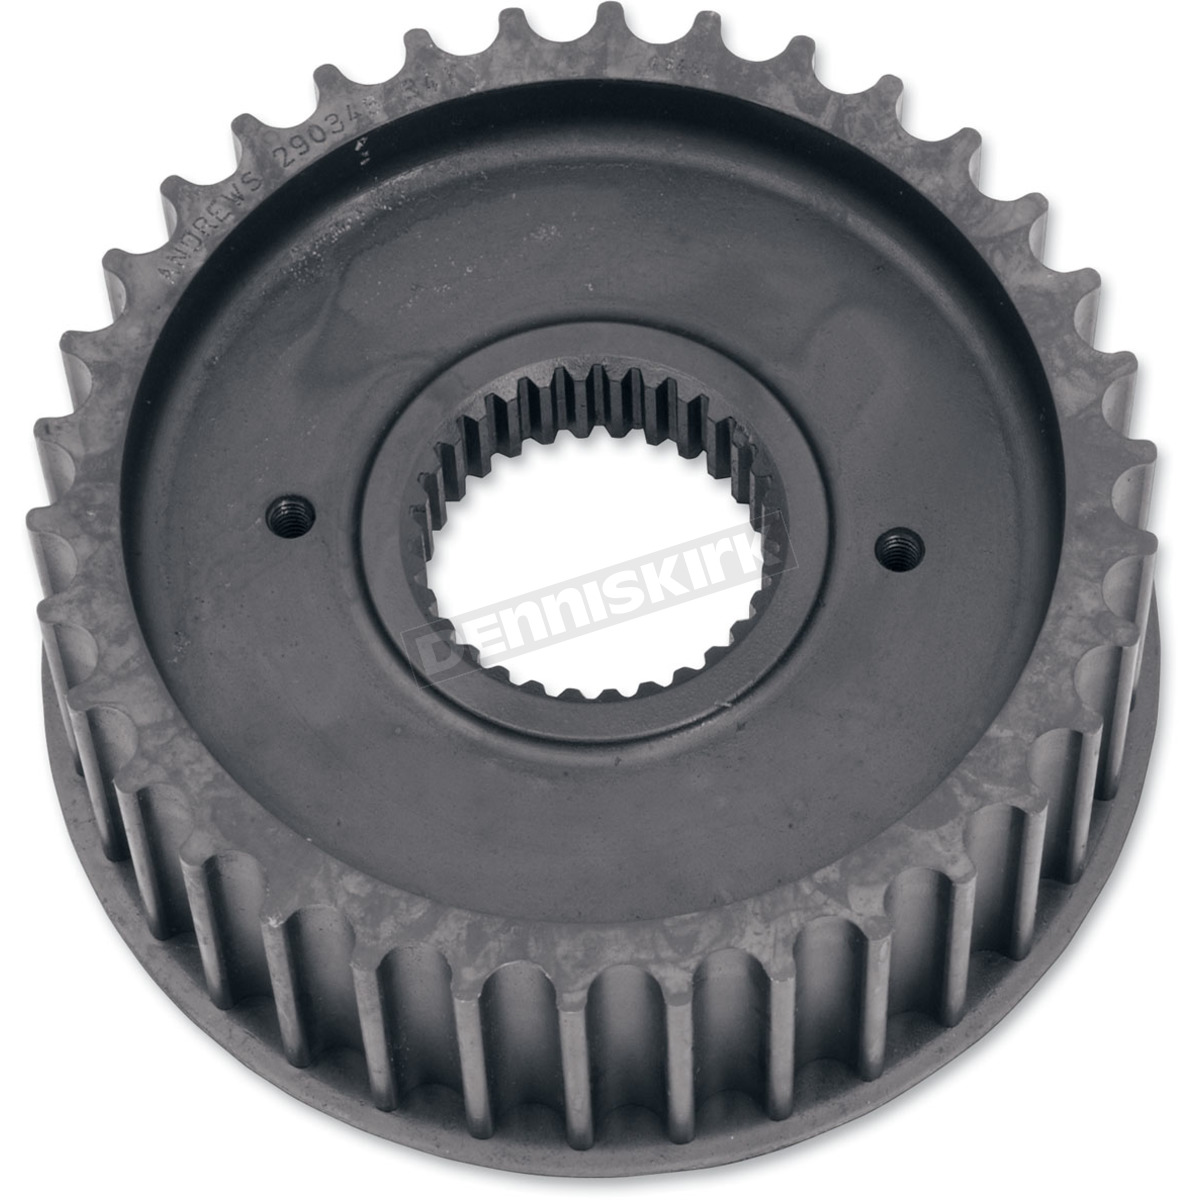 Smooth Cruising Belt Drive 34 Tooth Transmission Pulley - 290346